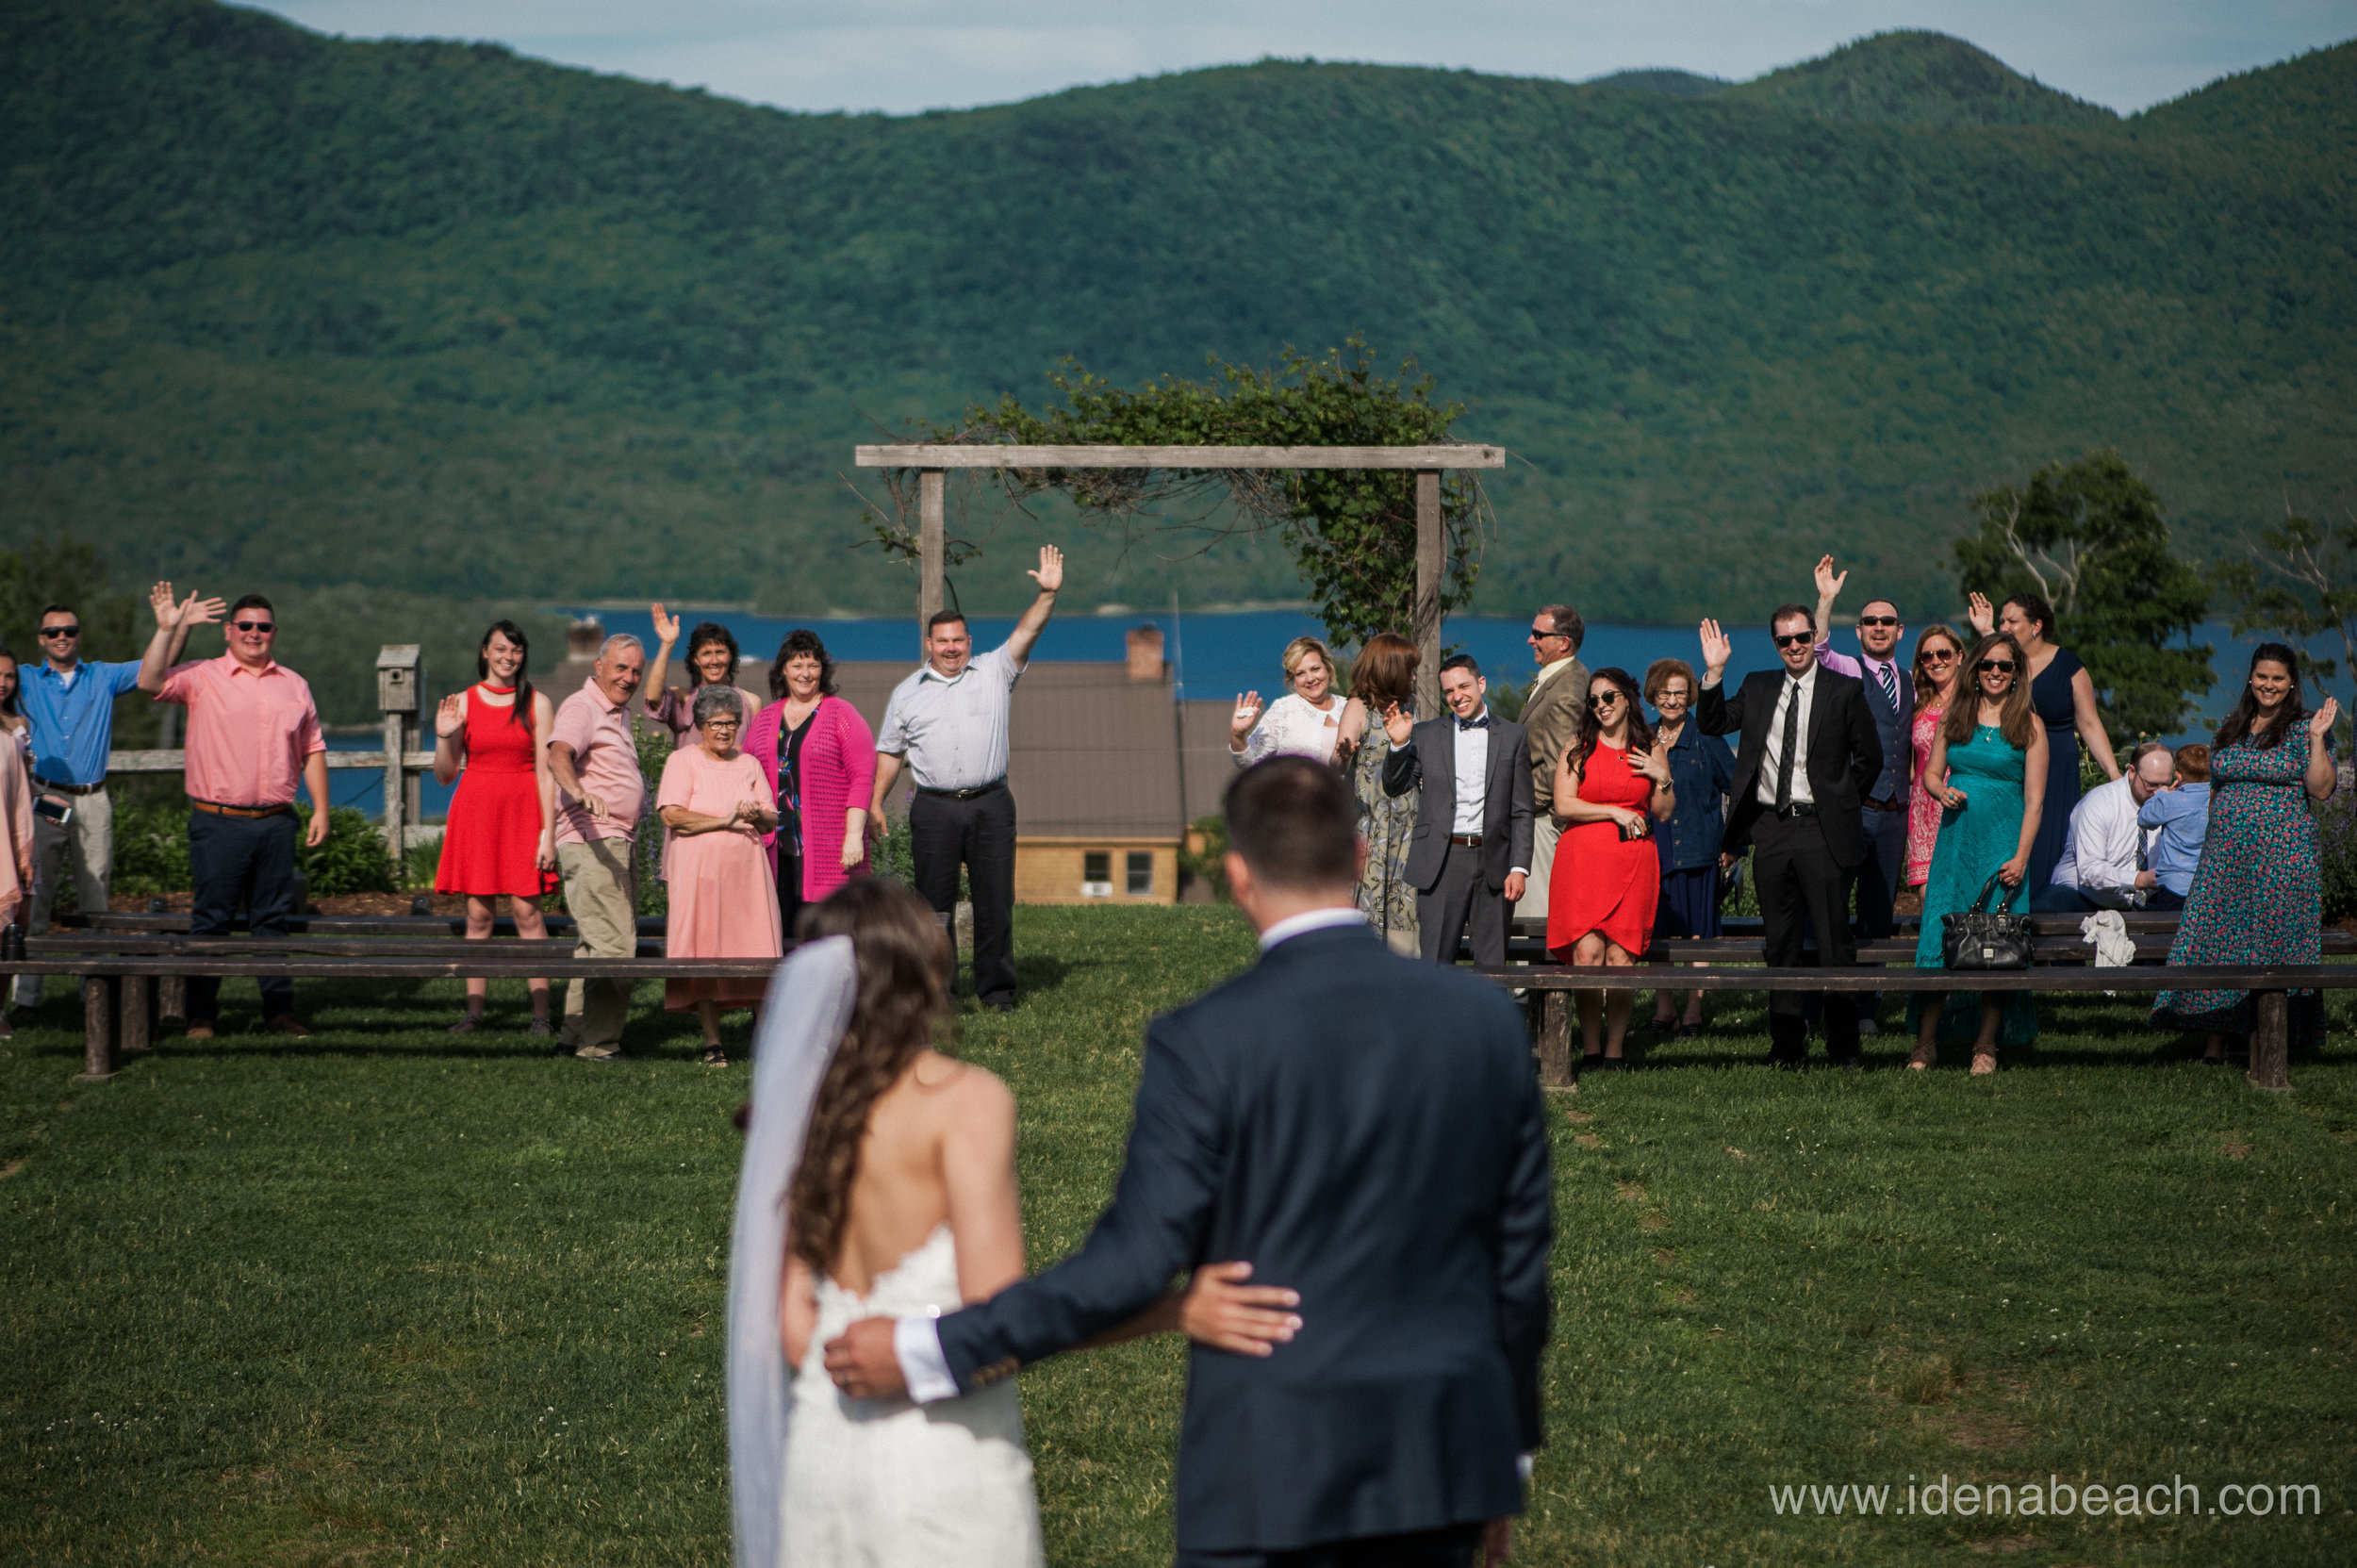 Mountain-Top-Inn-Vermont-Wedding-Photographer-69.jpg